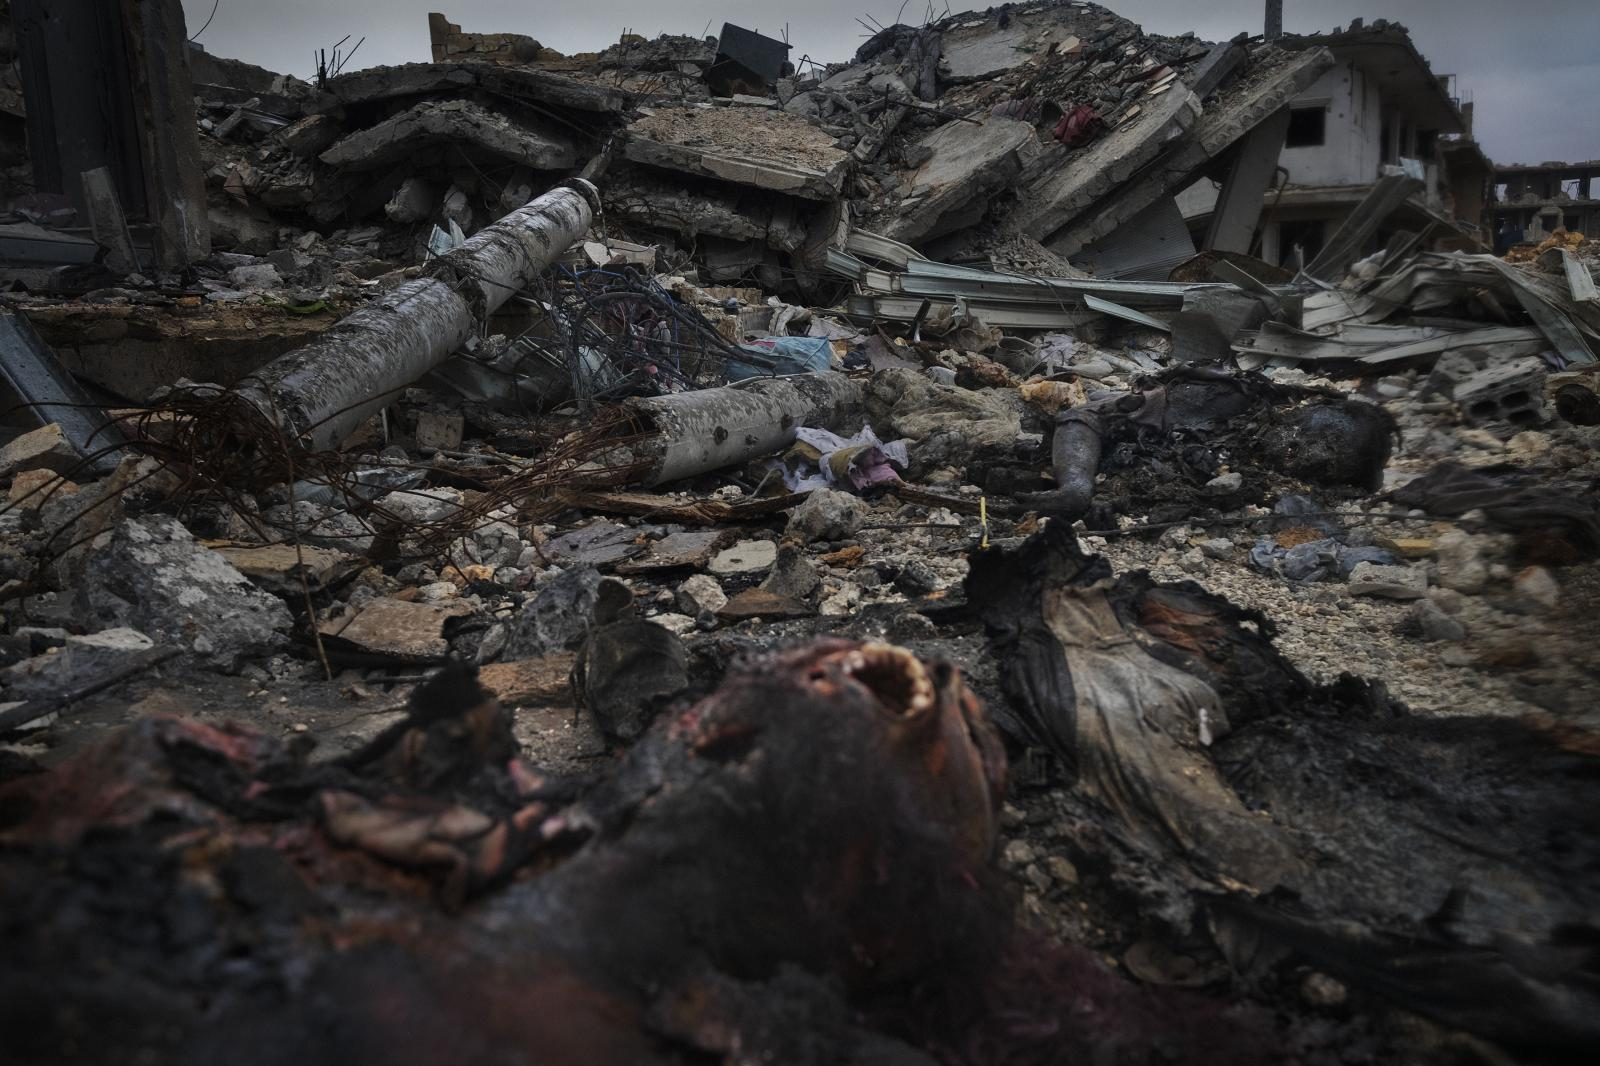 Burned corpses of ISIS jihadists in the destroyed city of Kobane during fighting there. The fall of Kobane signaled the beginning of the end of the caliphate project (Syria, 2015)